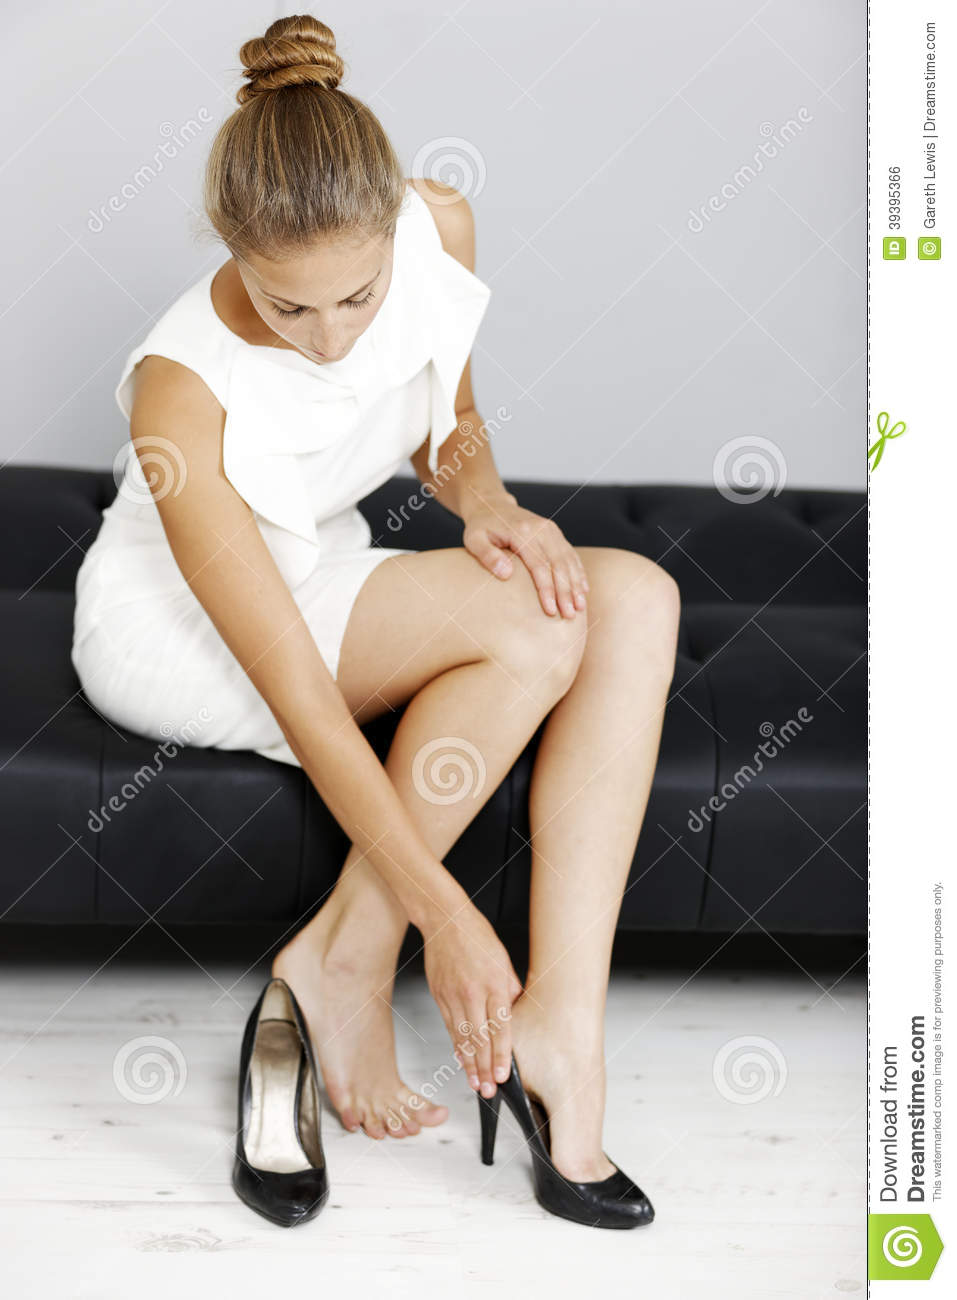 woman taking her shoes off stock photo - image: 39395366